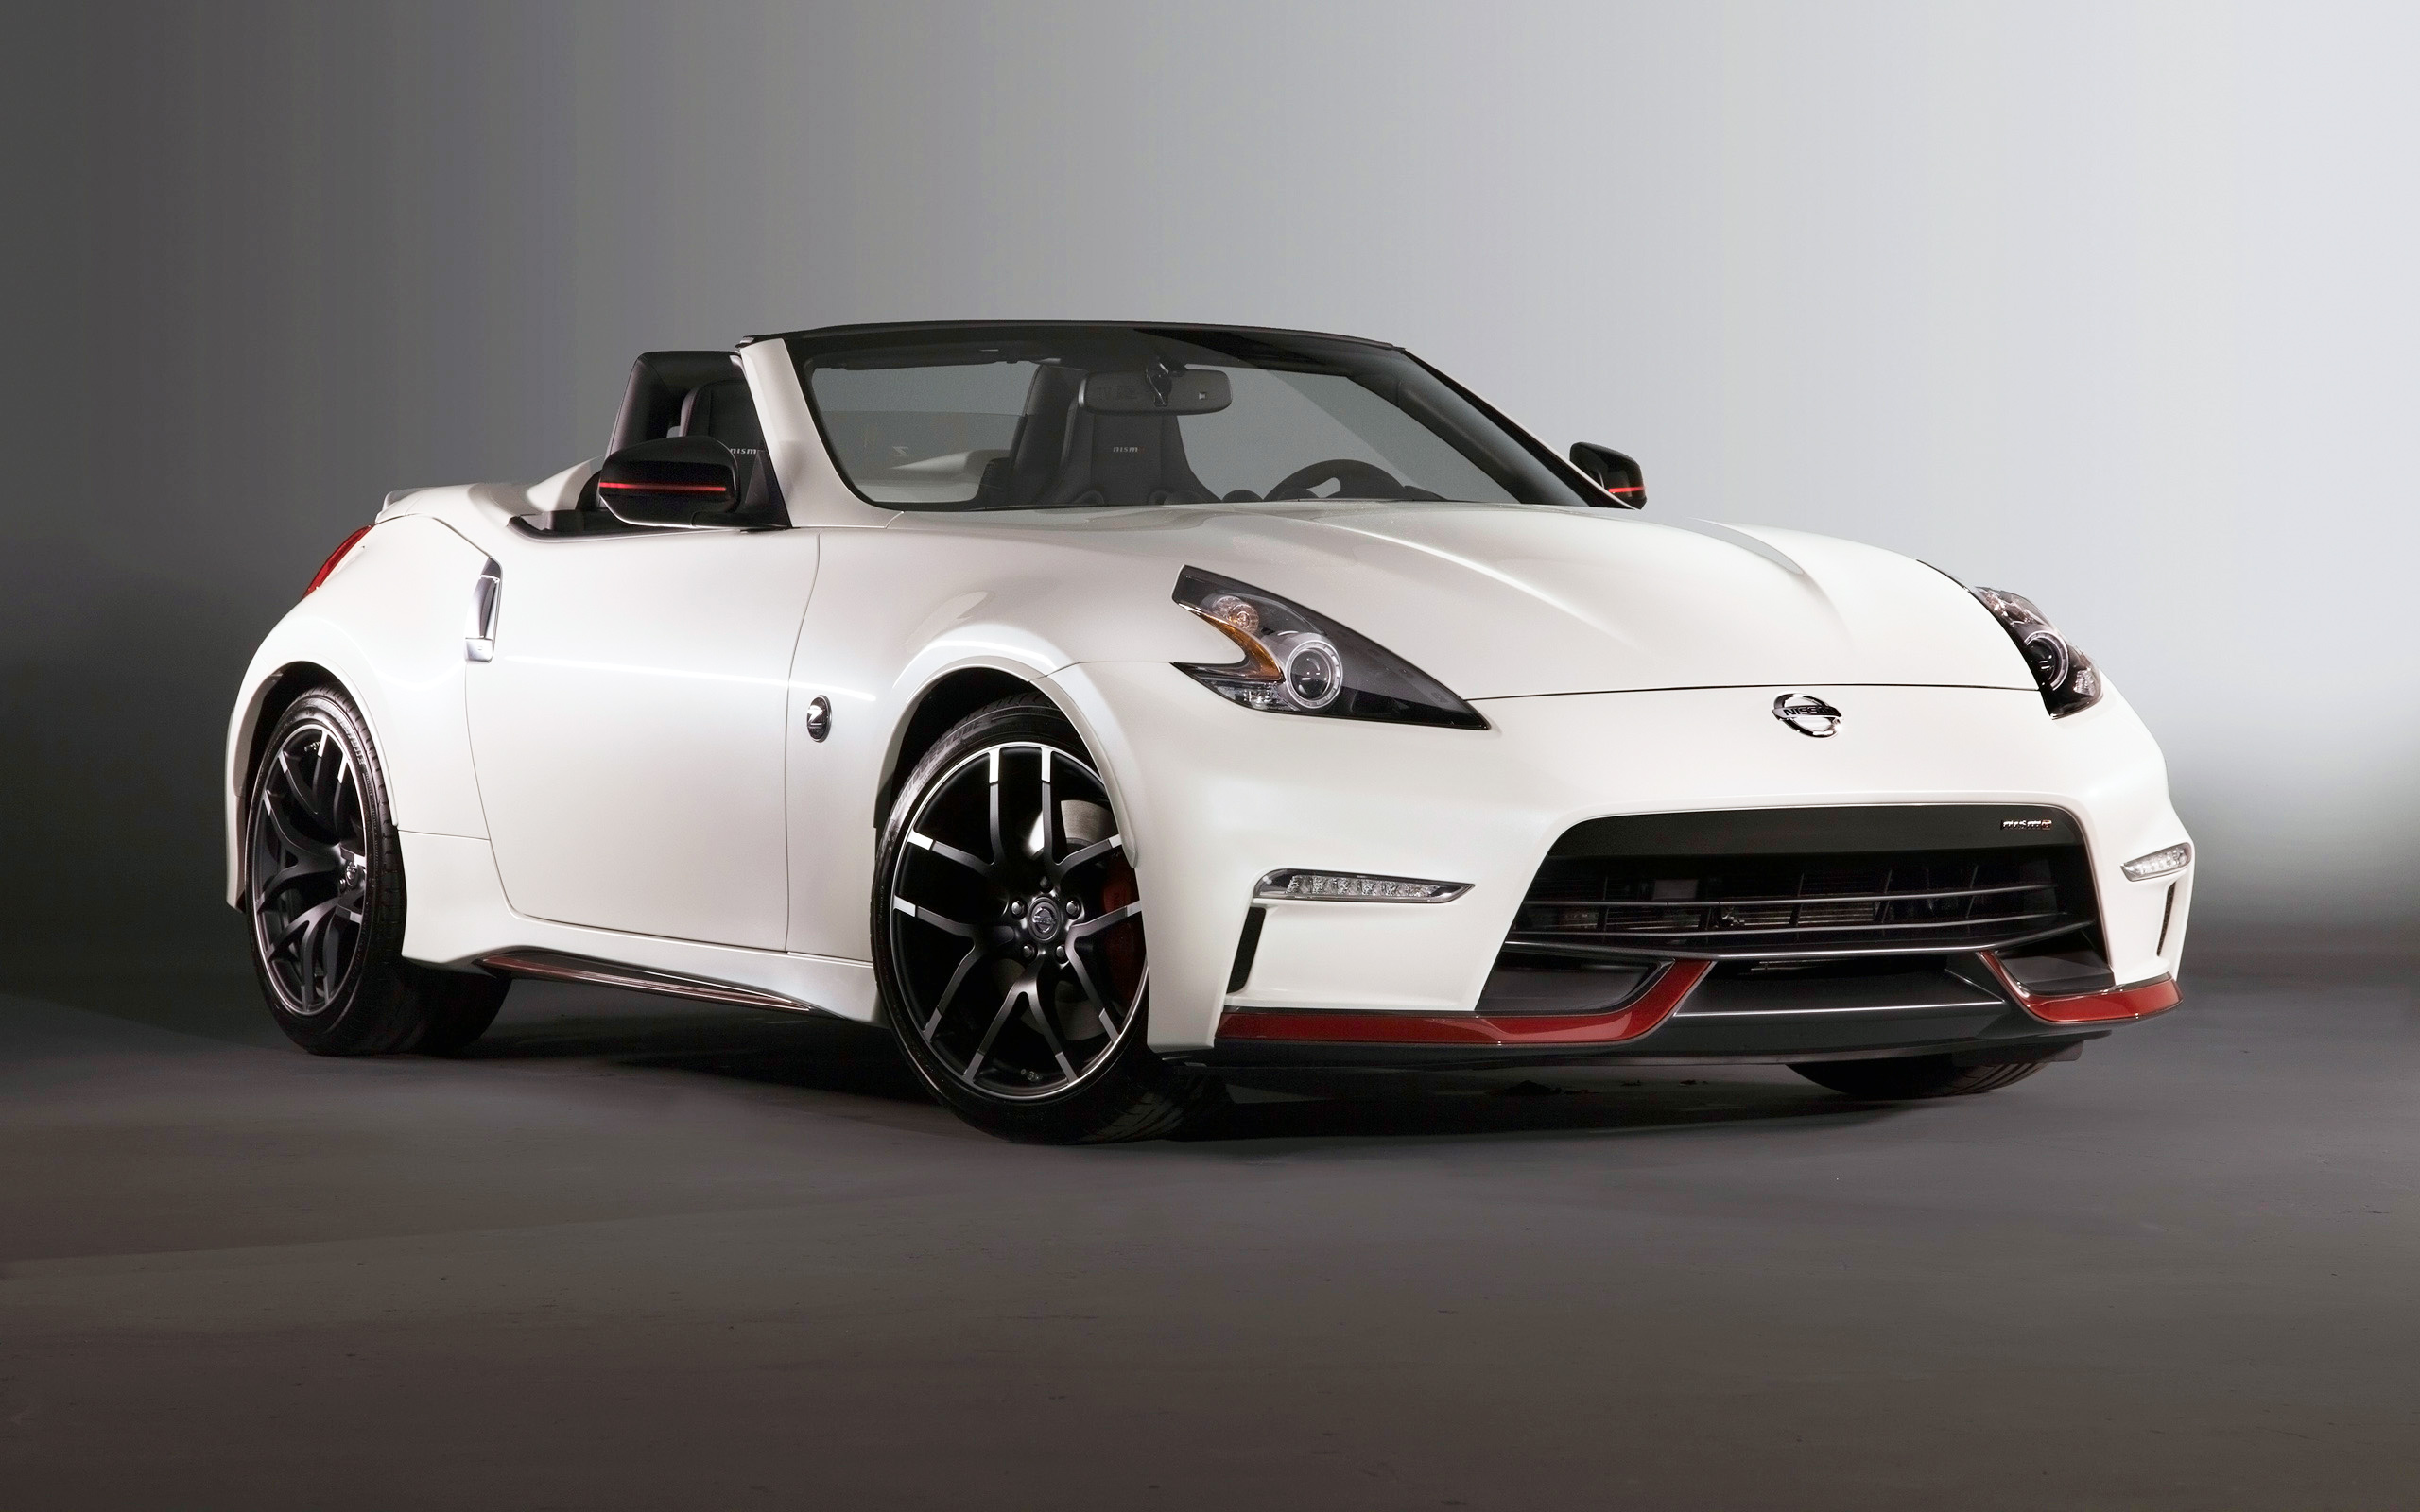 2015 nissan 370z nismo roadster concept wallpaper hd car. Black Bedroom Furniture Sets. Home Design Ideas